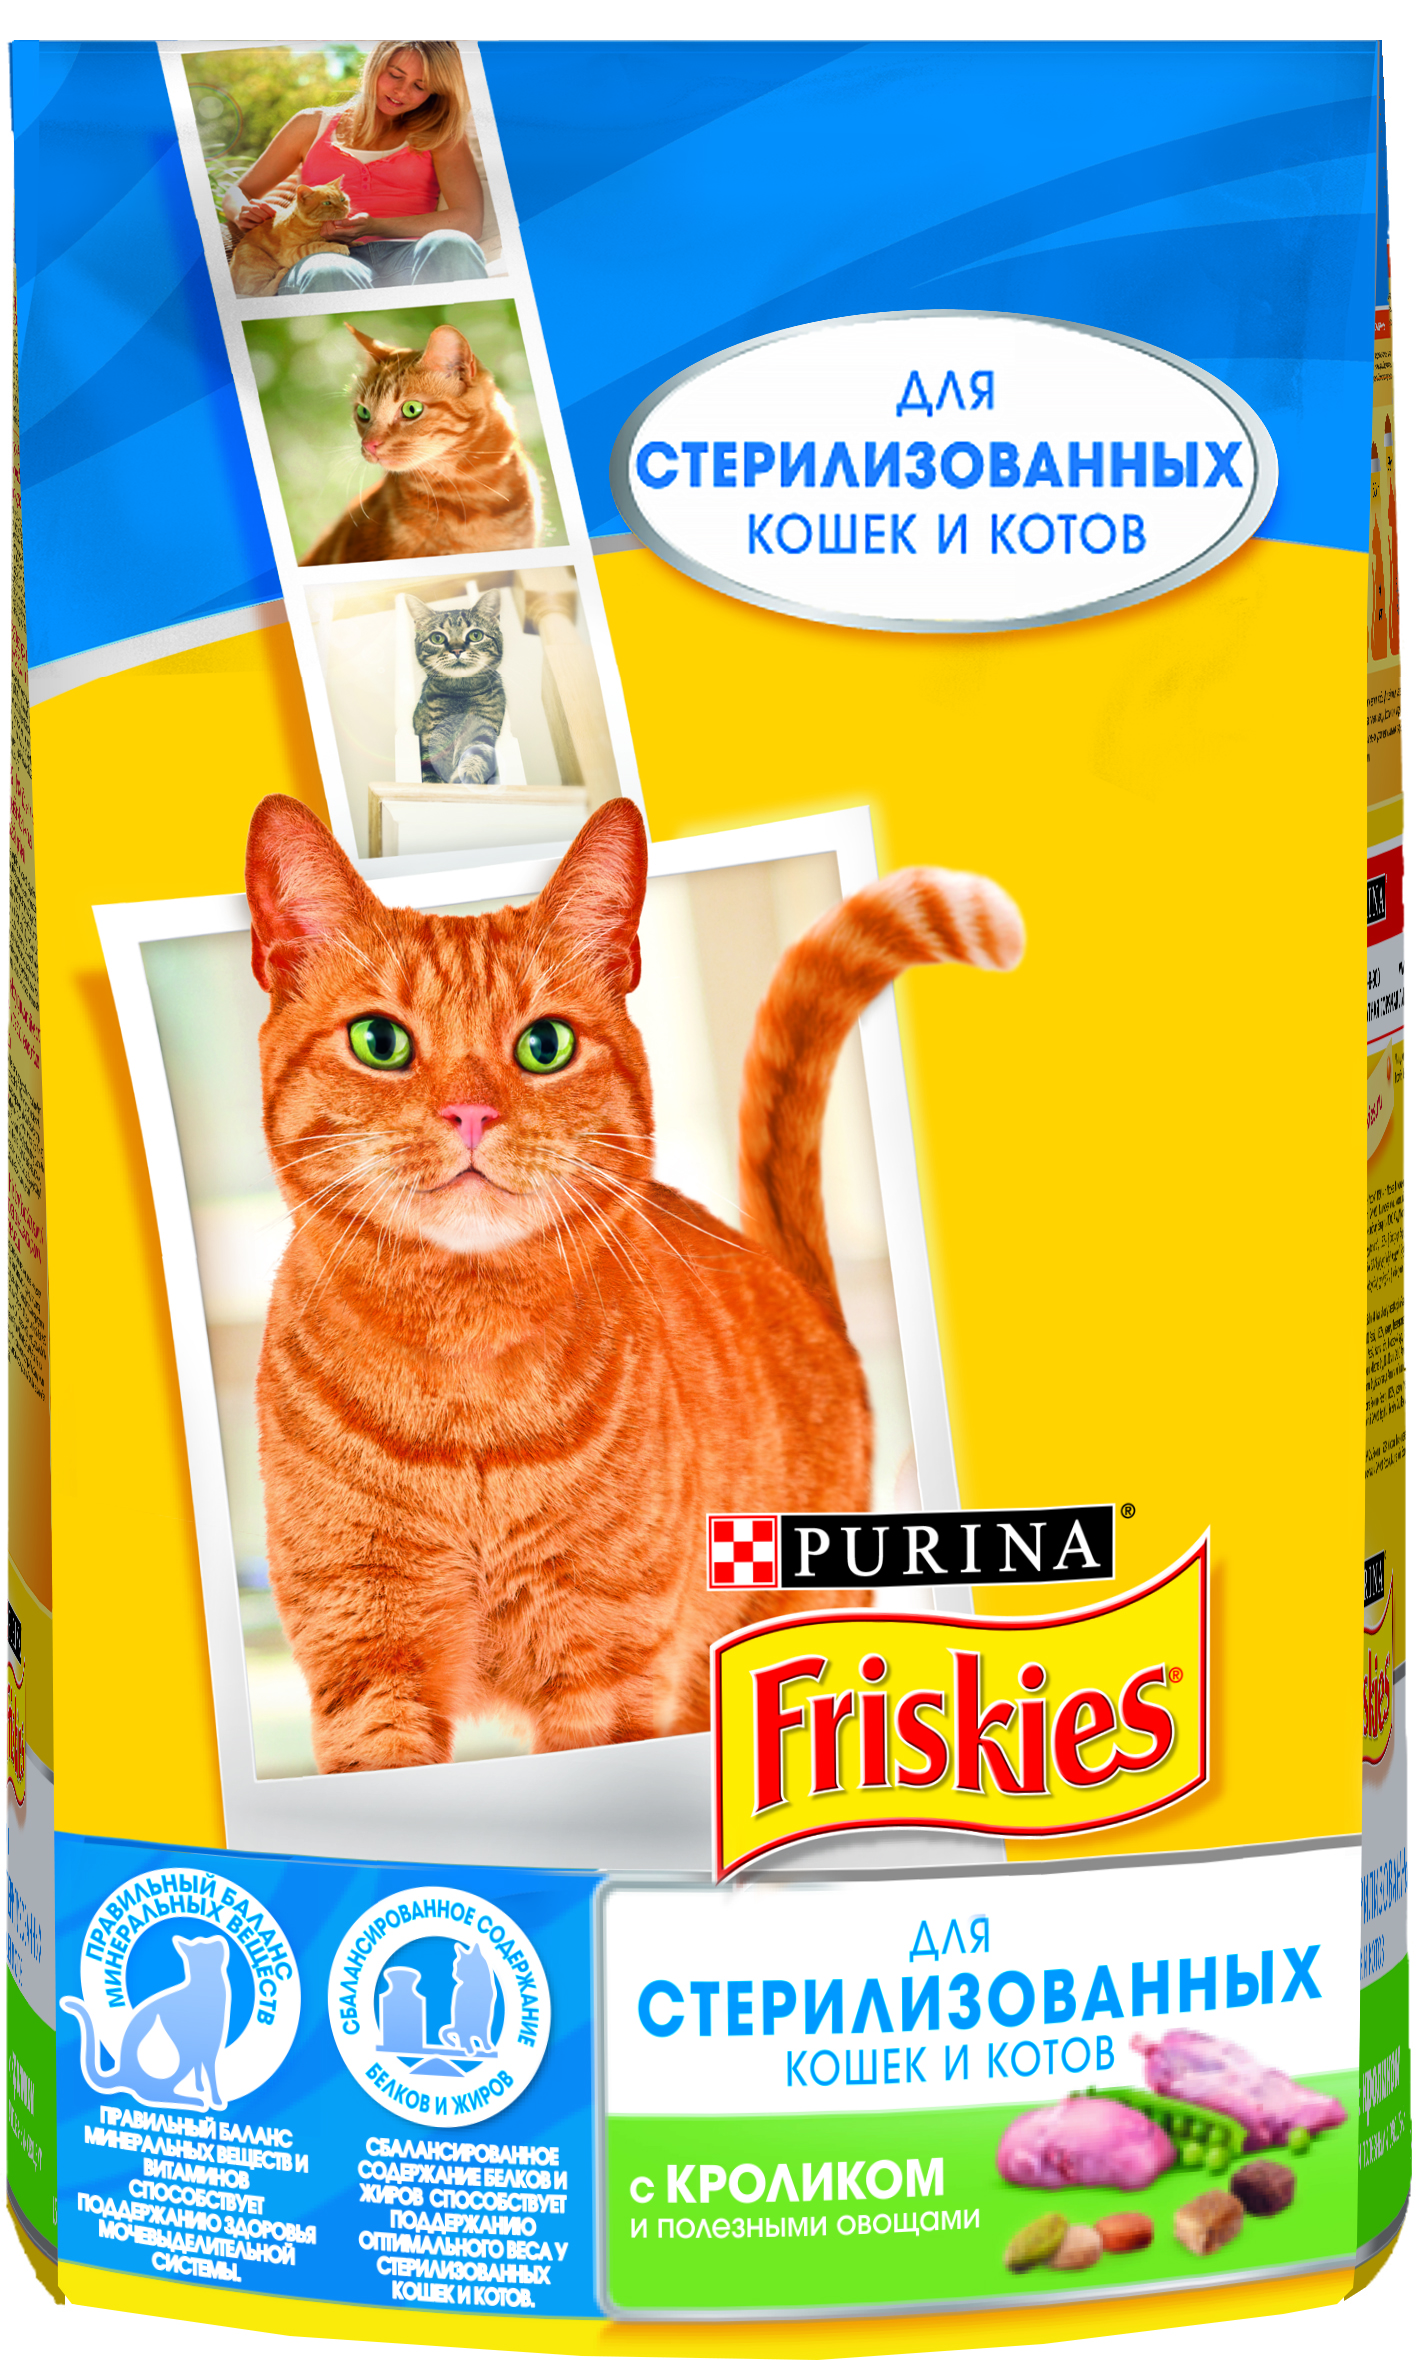 все цены на Dry food Friskies for sterilized cats and cats with a rabbit and healthy vegetables, Package, 1.5 kg онлайн